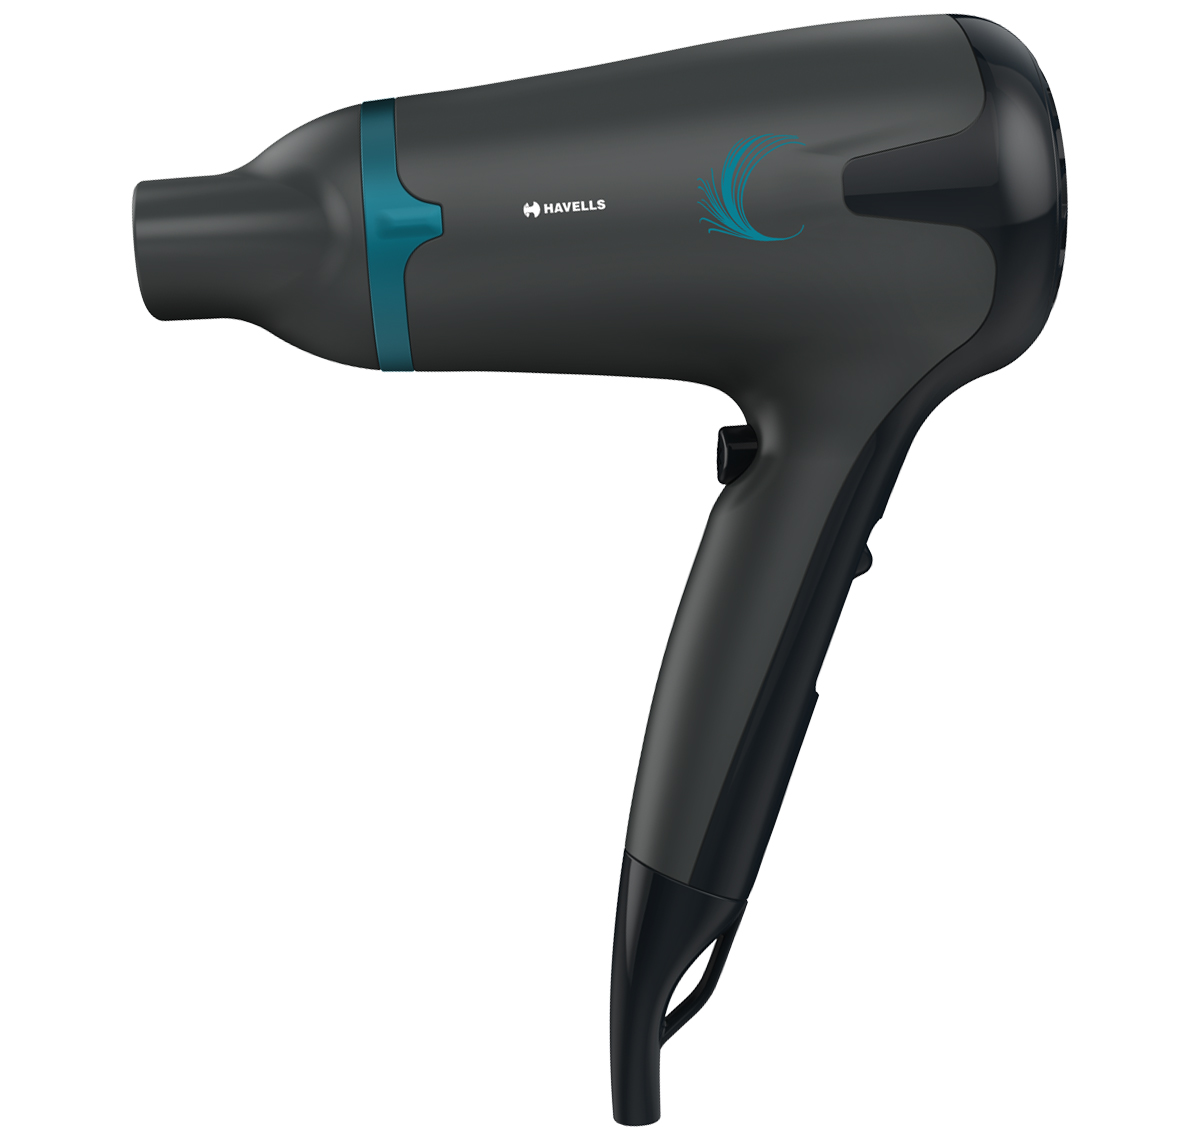 2-in-1 Hair Dryer with Diffuser and Thin Concentrator (Black)